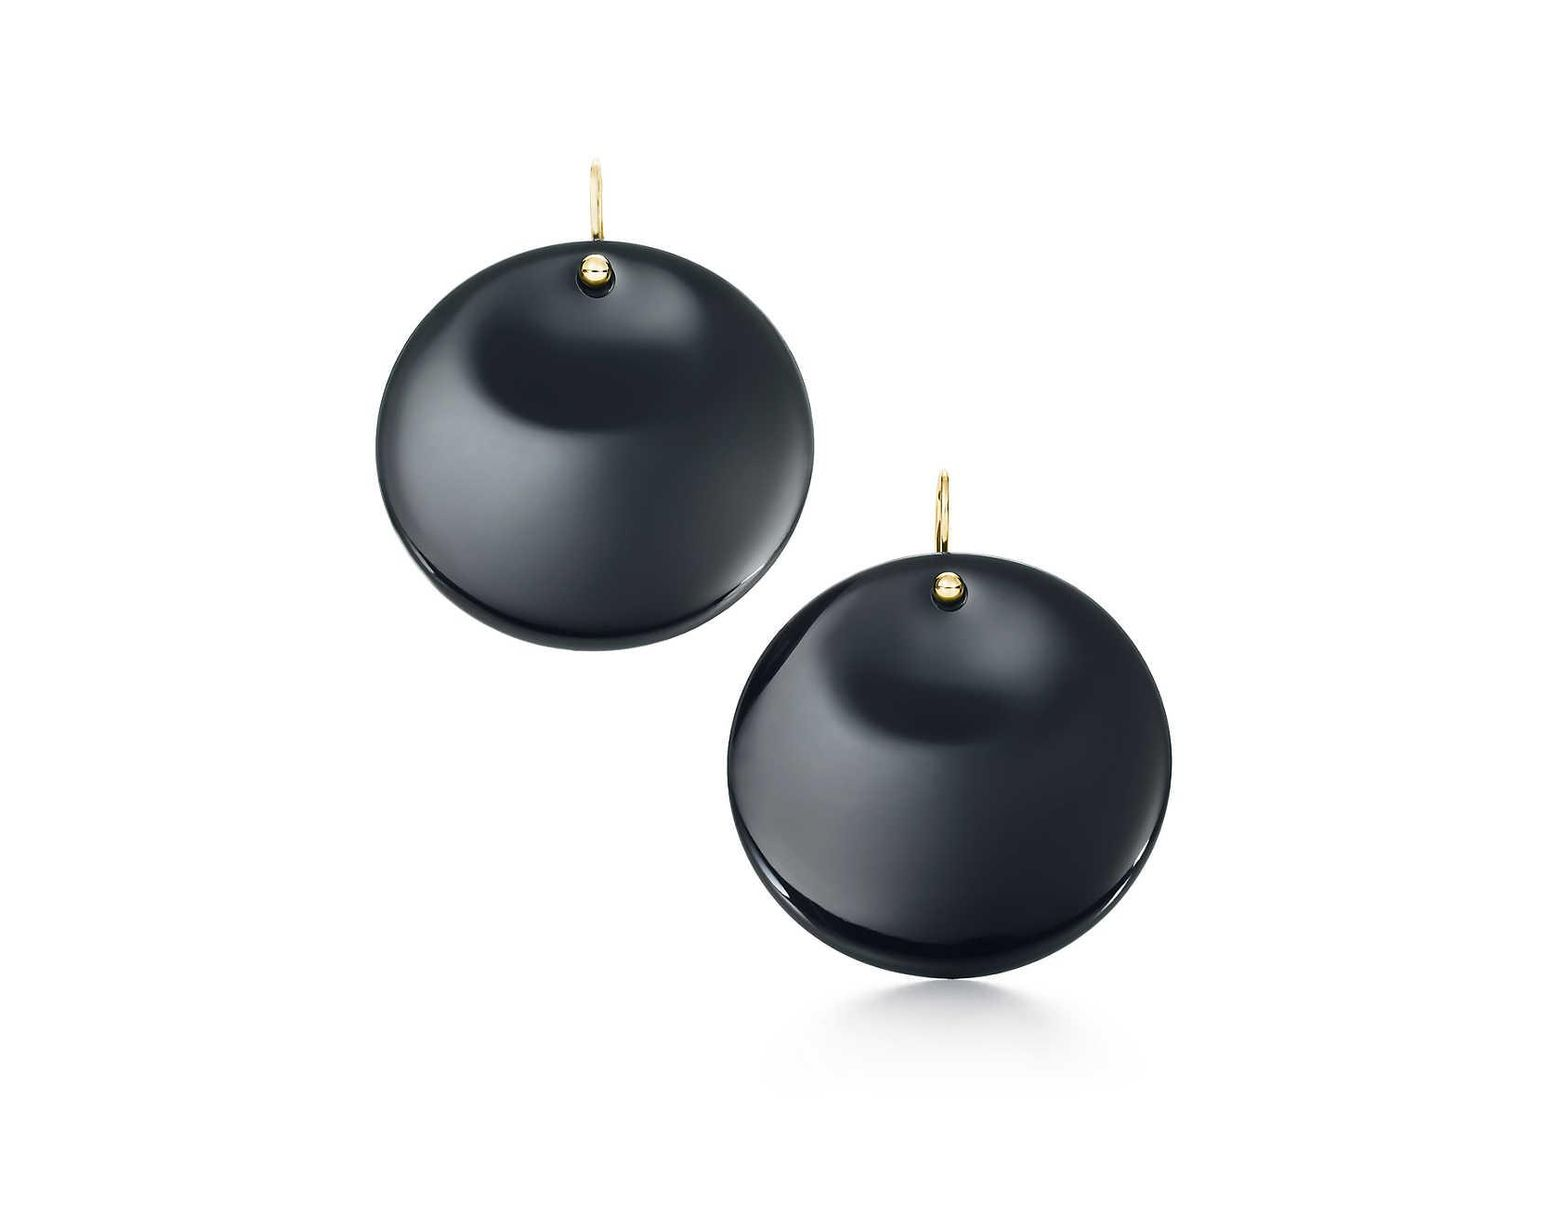 f46264cc8 Tiffany & Co. Elsa Peretti® Round Earrings In Lacquer Over Japanese Hardwood  With 18k Gold in Metallic - Lyst